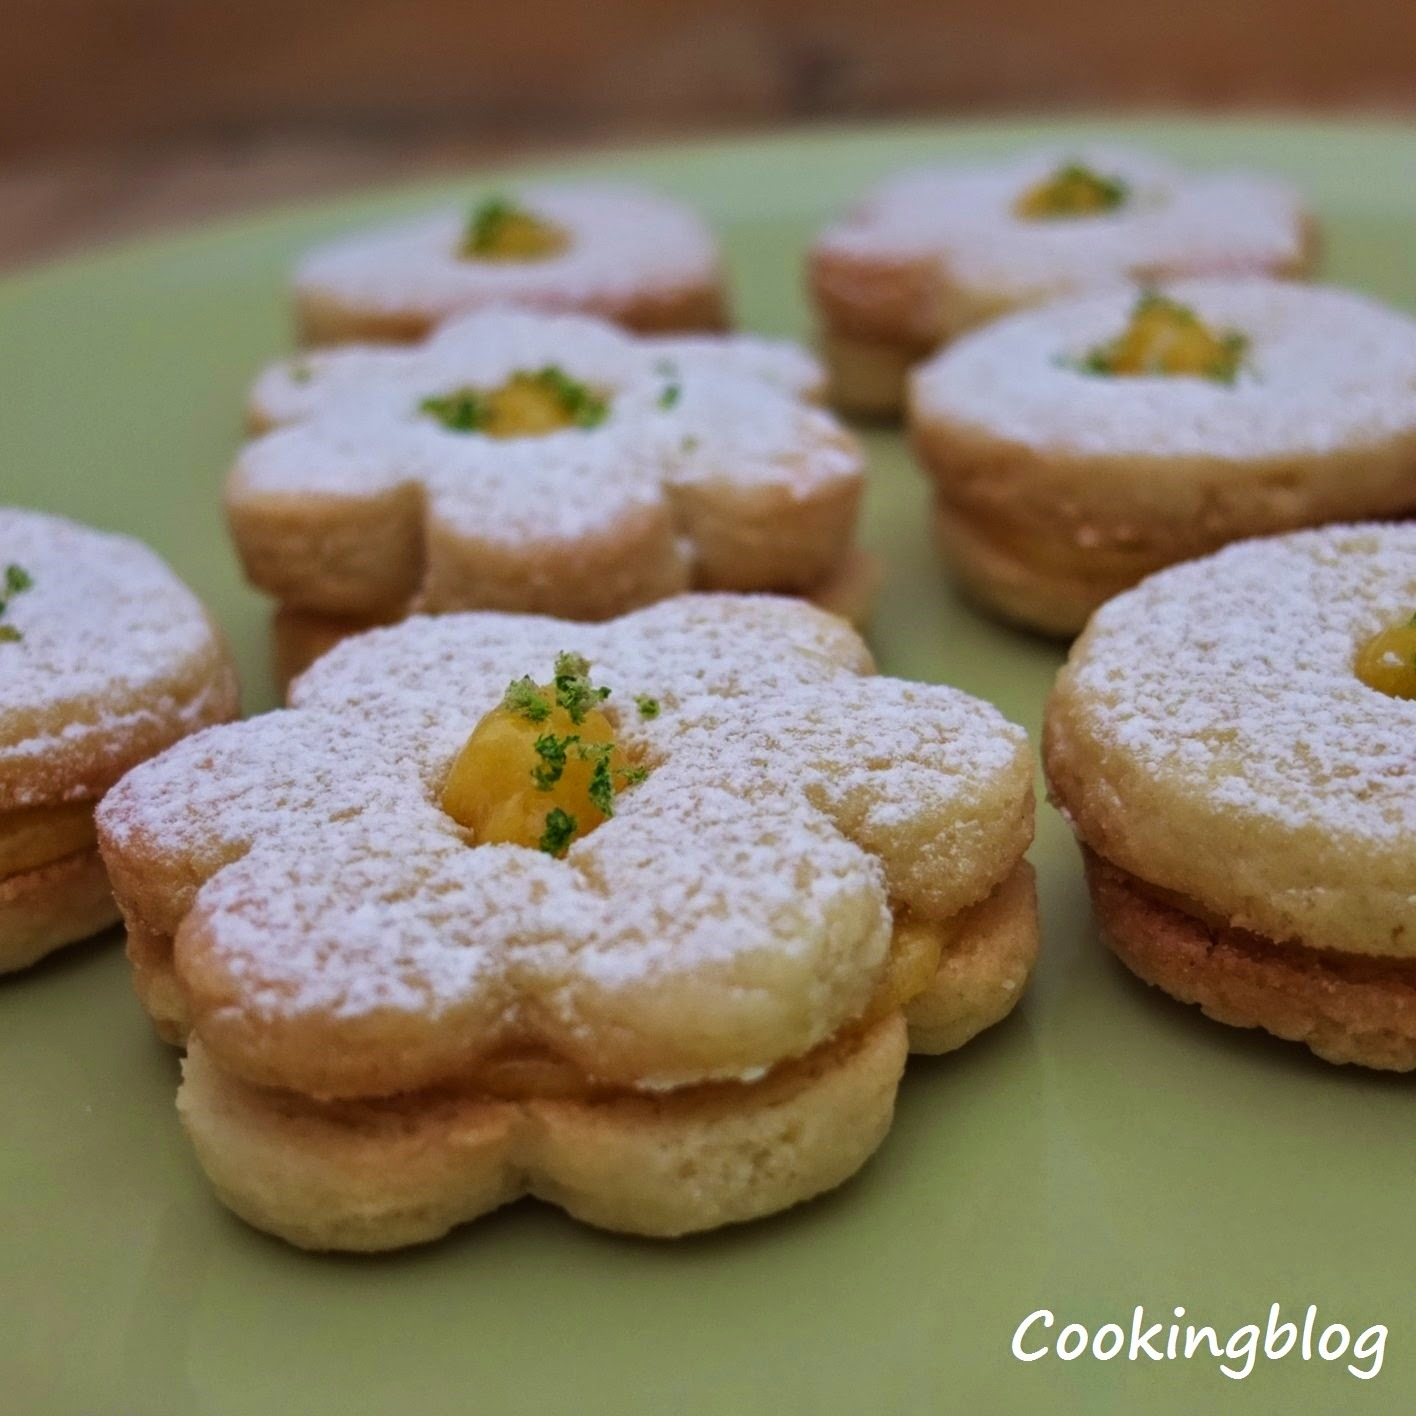 Biscoitos de coco e curd de lima | Coconut biscuits with lime curd